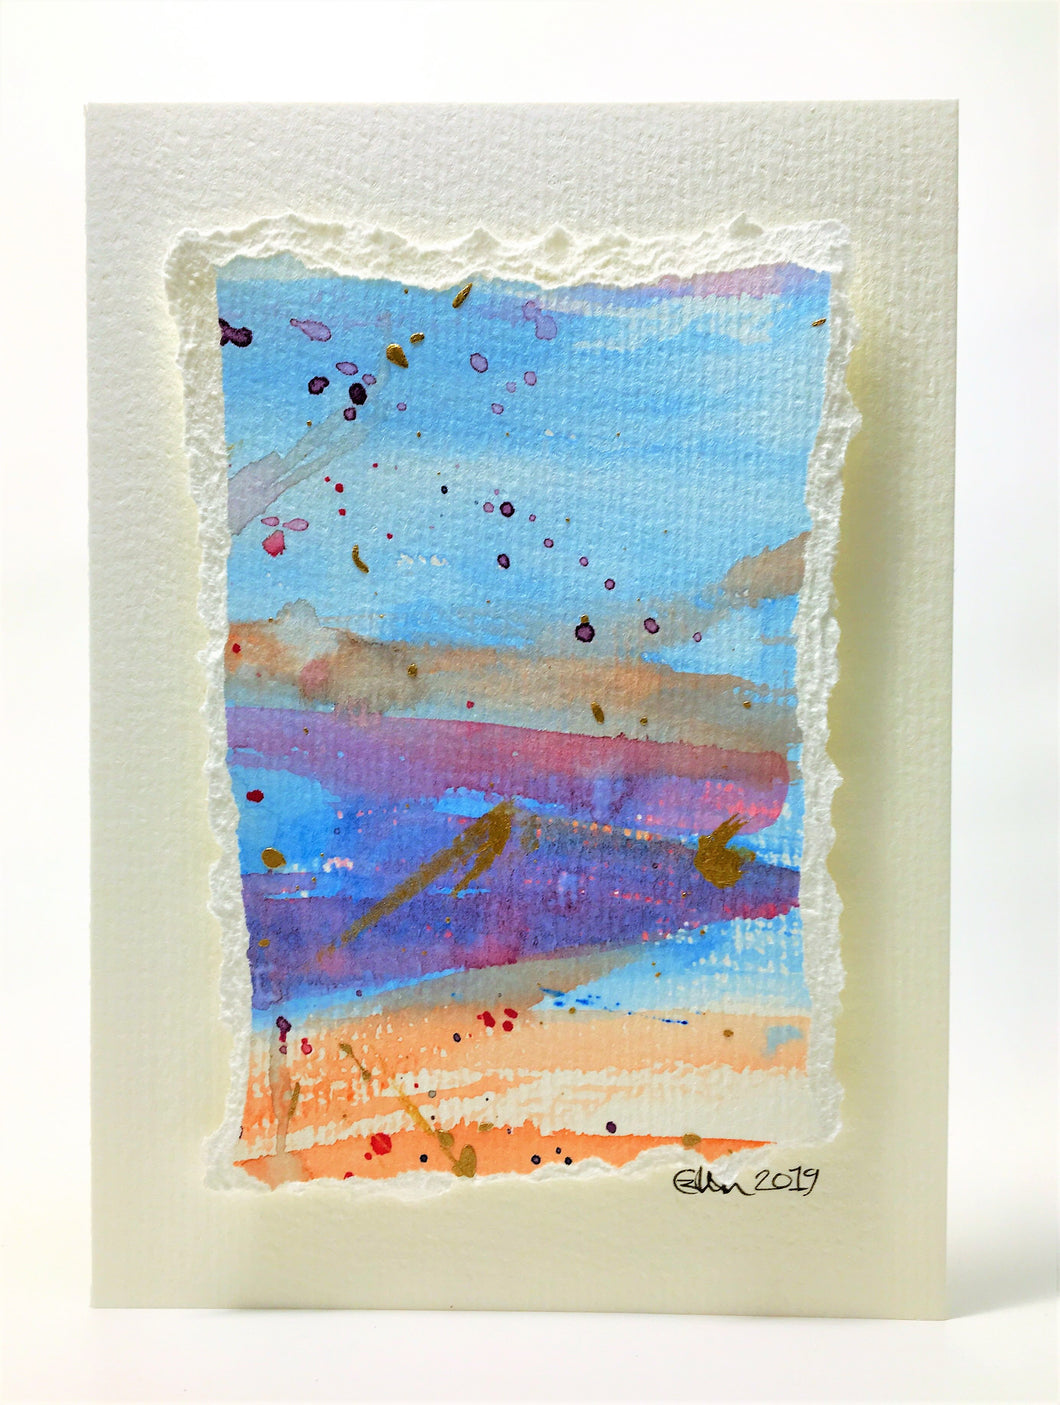 Original Hand Painted Greeting Card - Pink, Blue, Orange, Purple and Gold - eDgE dEsiGn London